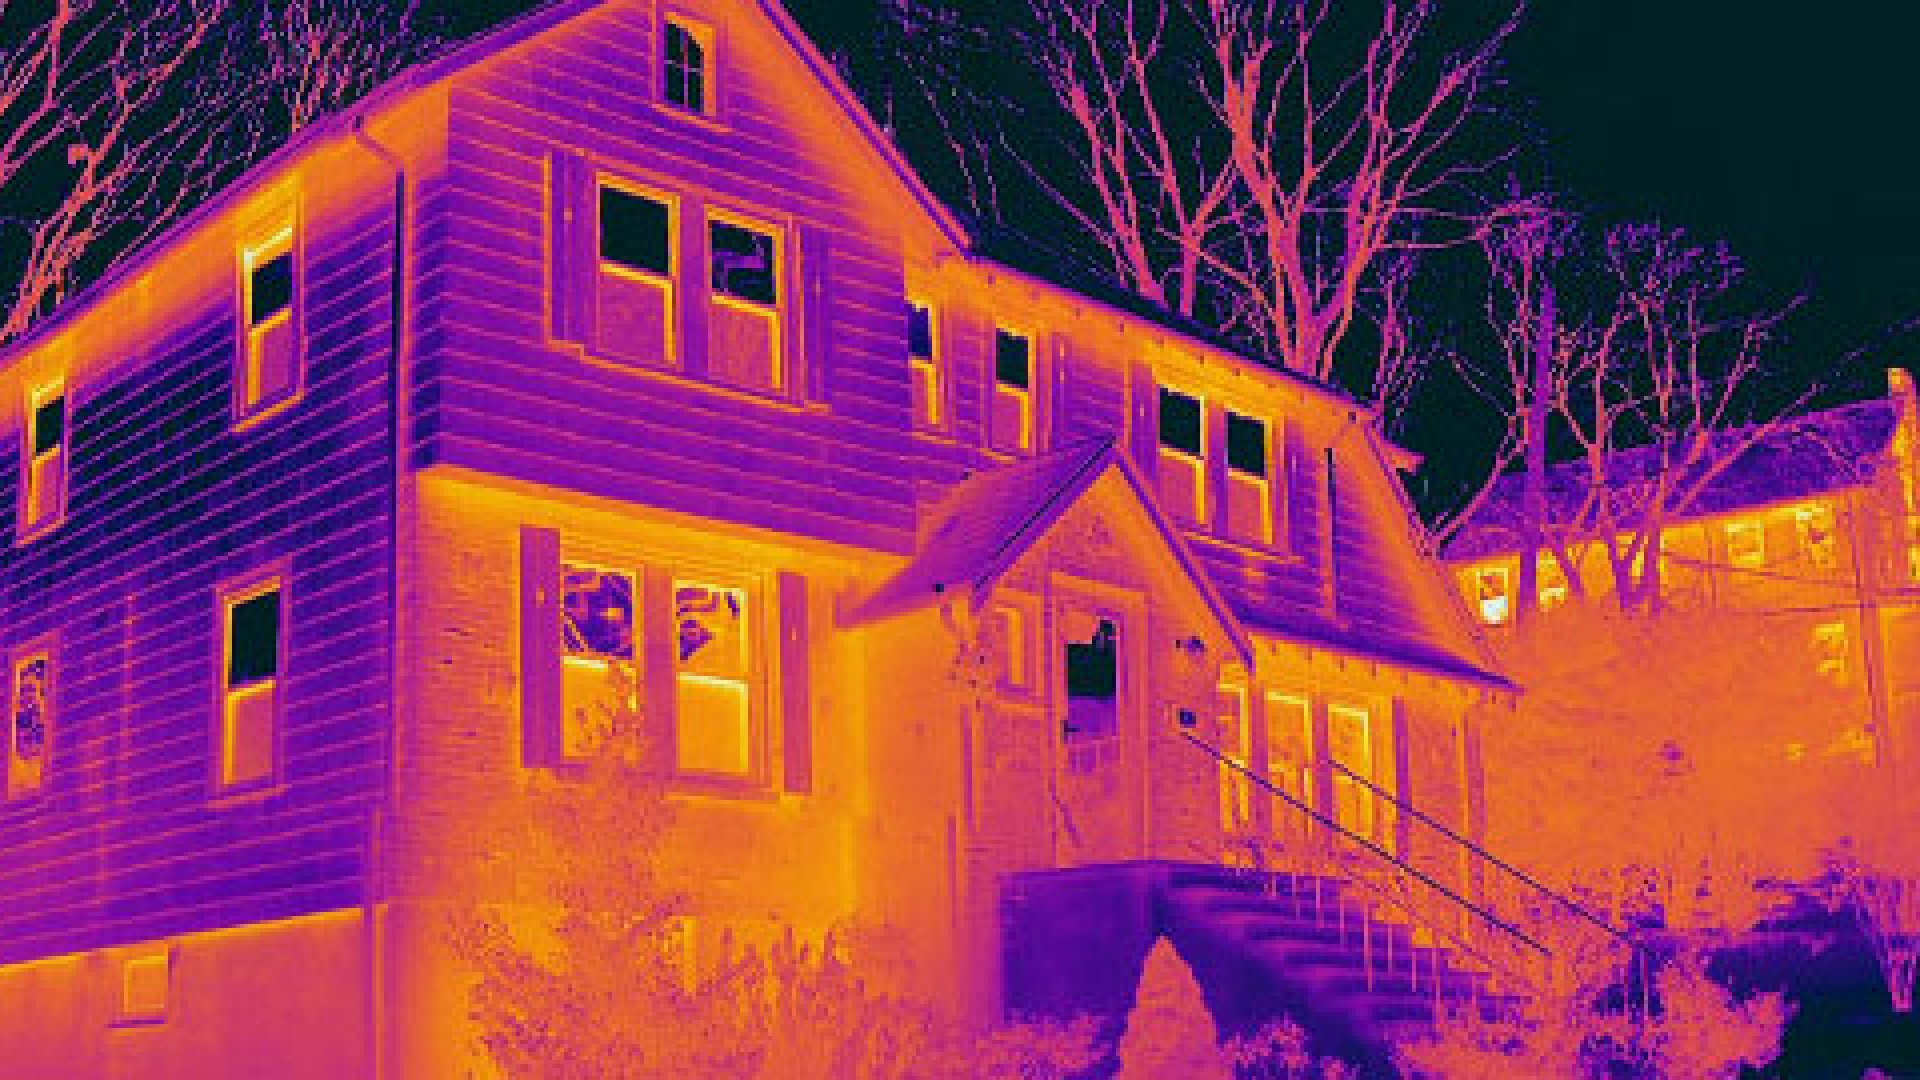 Essess, a Boston-based start-up, analyzes a building's energy efficiency performance with thermal heat maps.